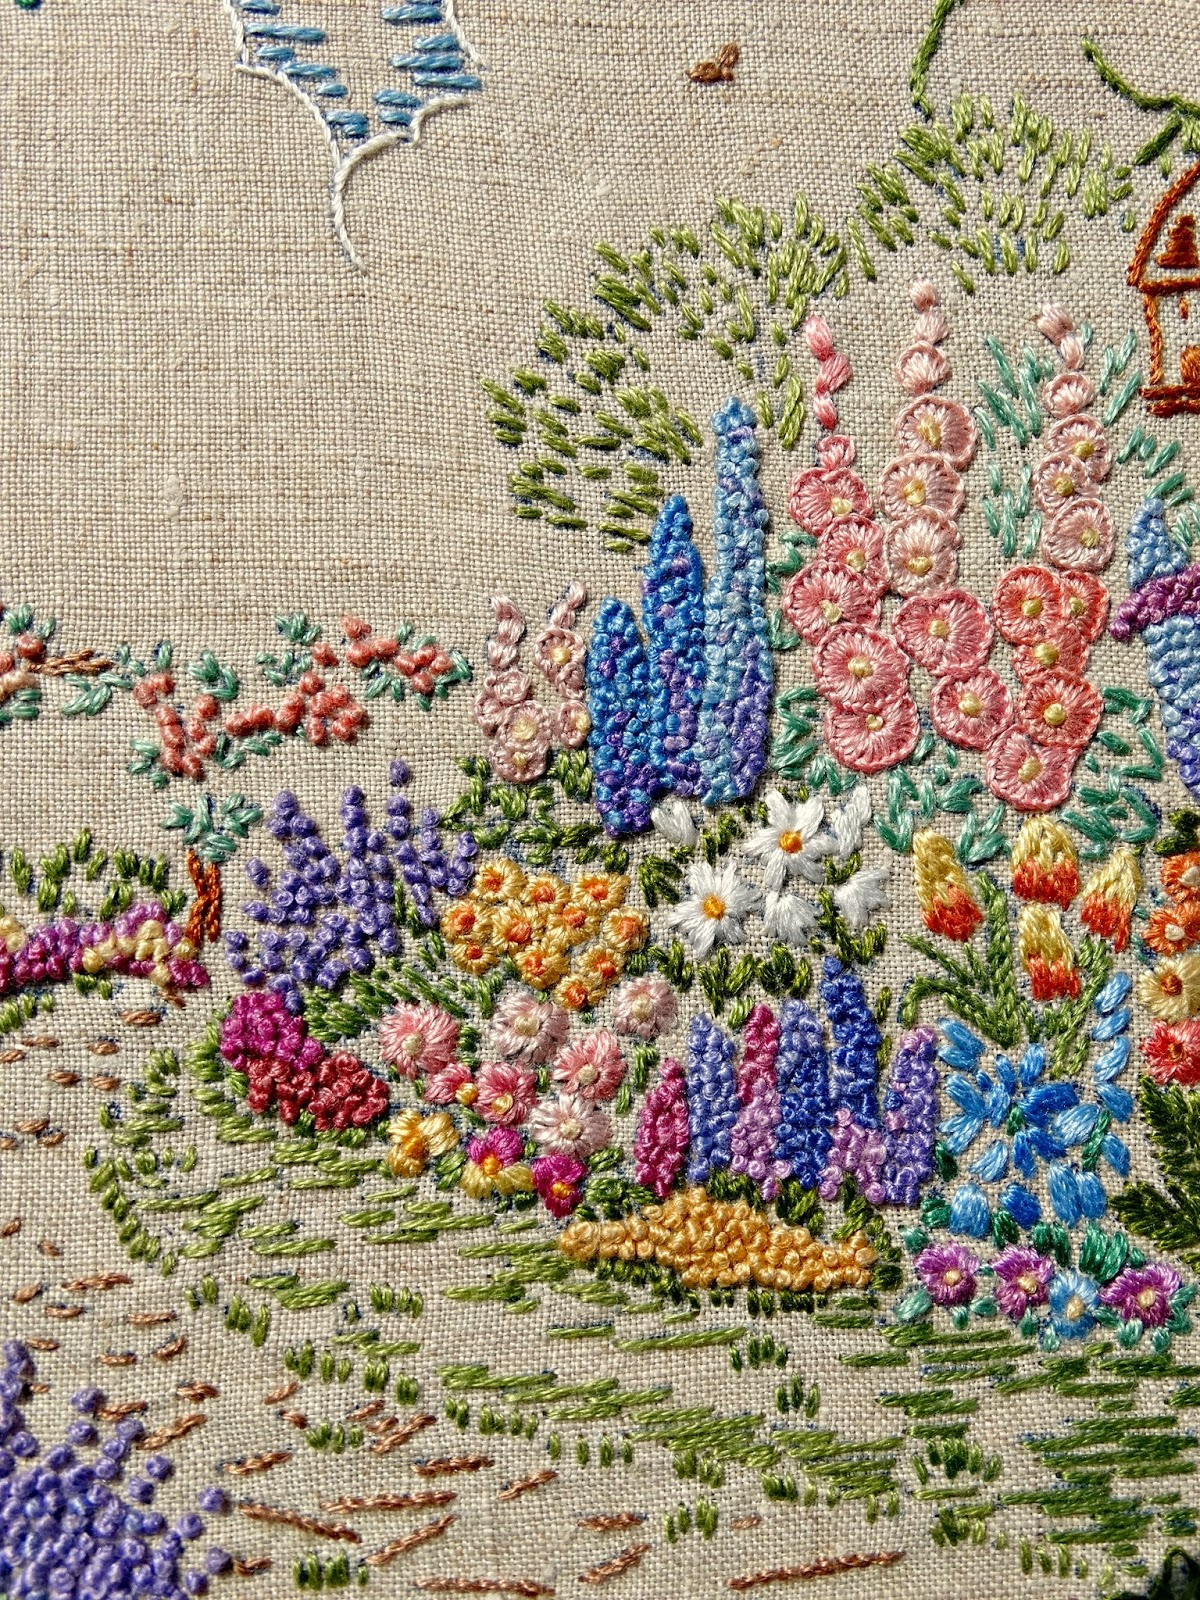 Saucy Stitch: A Vintage Embroidered Garden